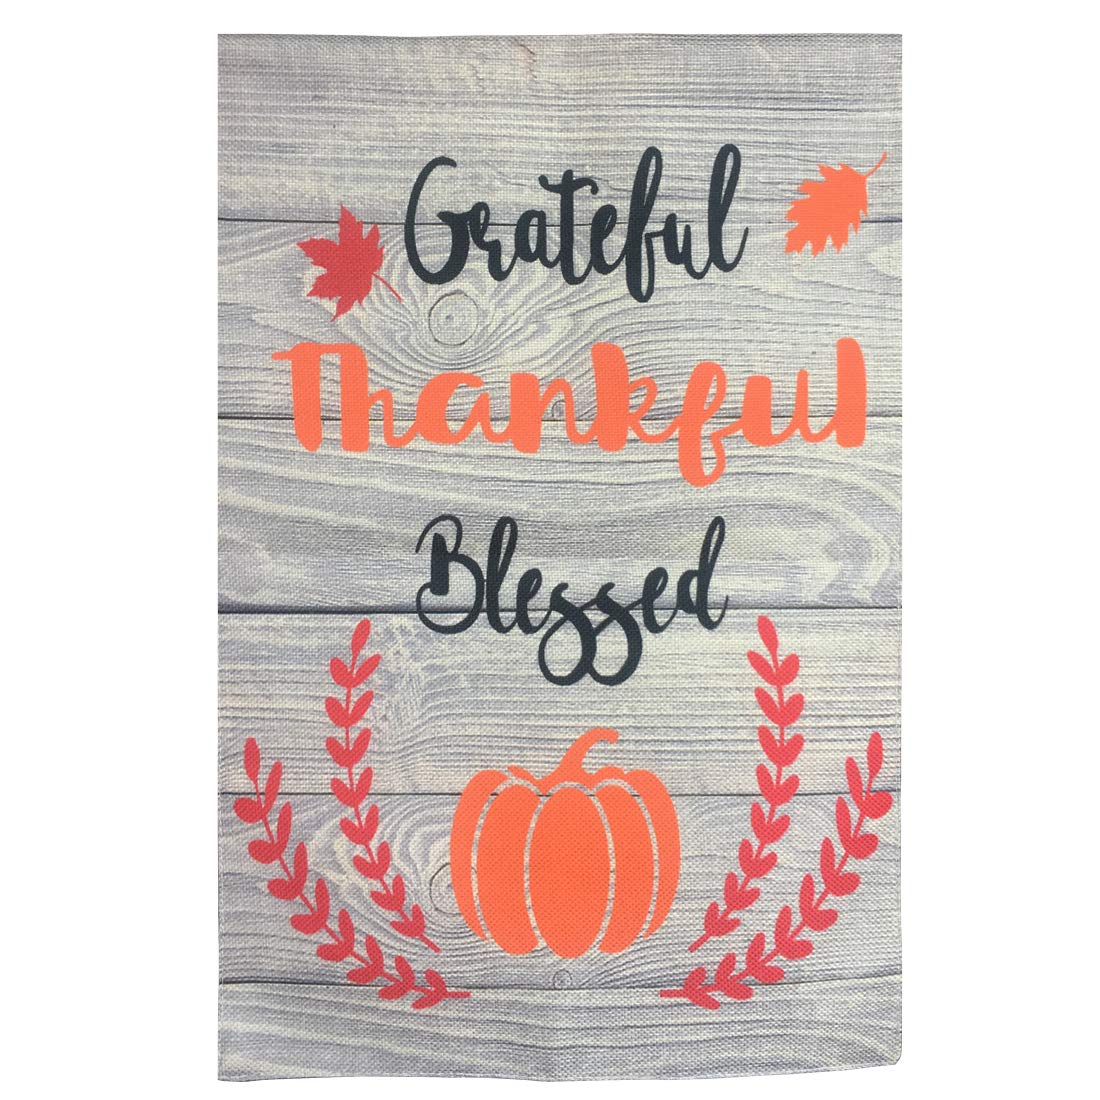 Uniwish Grateful Thankful Blessed Garden Flag Double Sided Rustic Wood Shading Sign 12.5 x 18.5 Inch Thanksgiving Four Seasons Yard Decorations